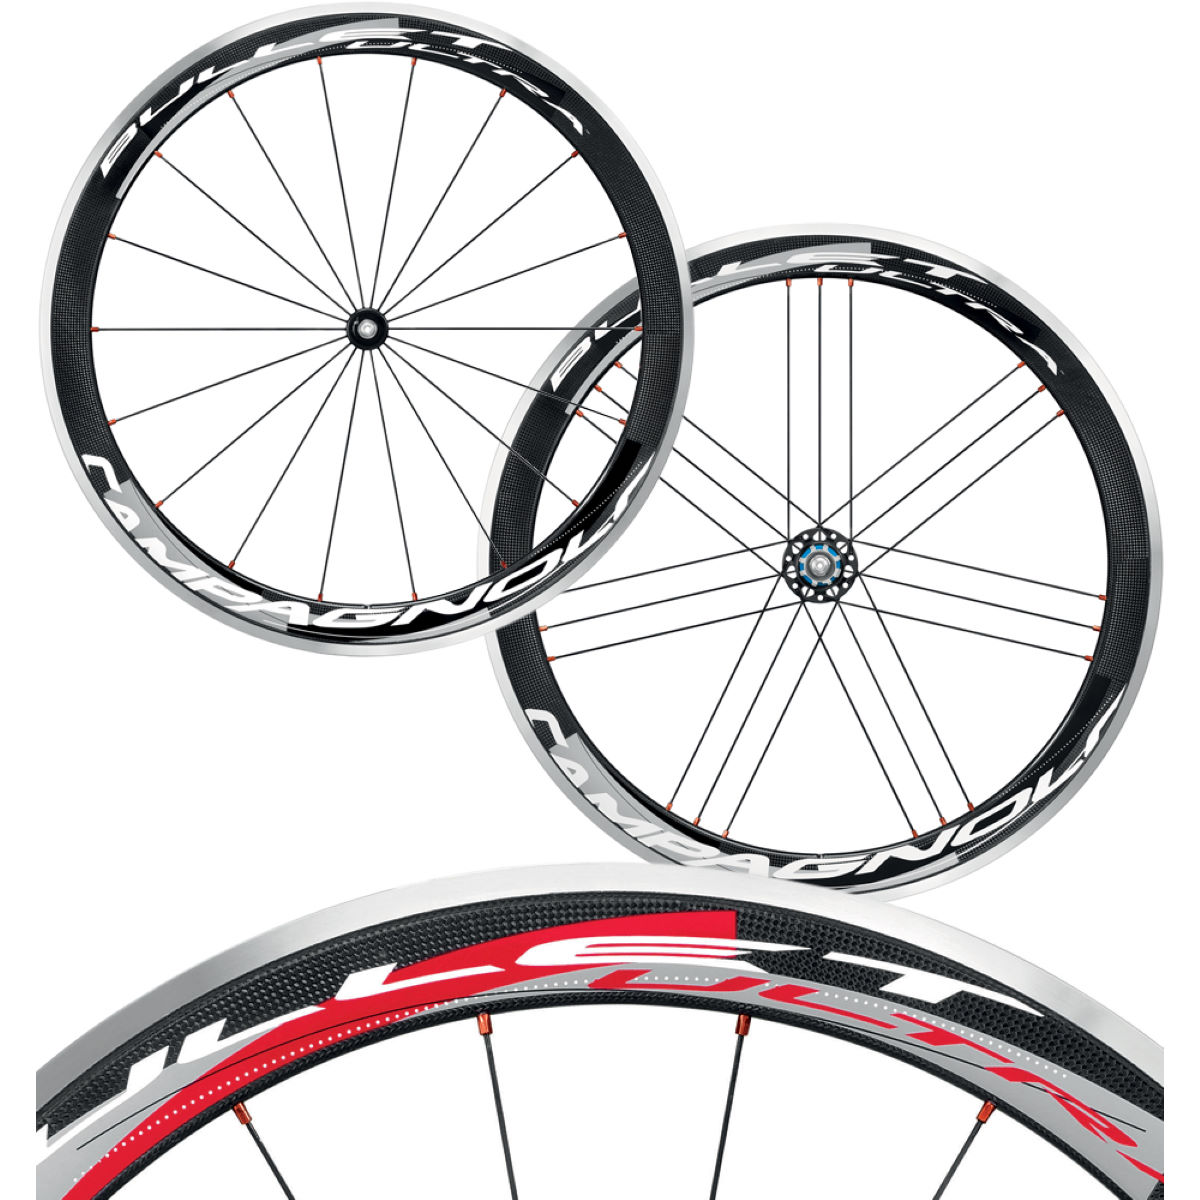 Campagnolo - Bullet Ultra カーボンクリンチャーホイールセット